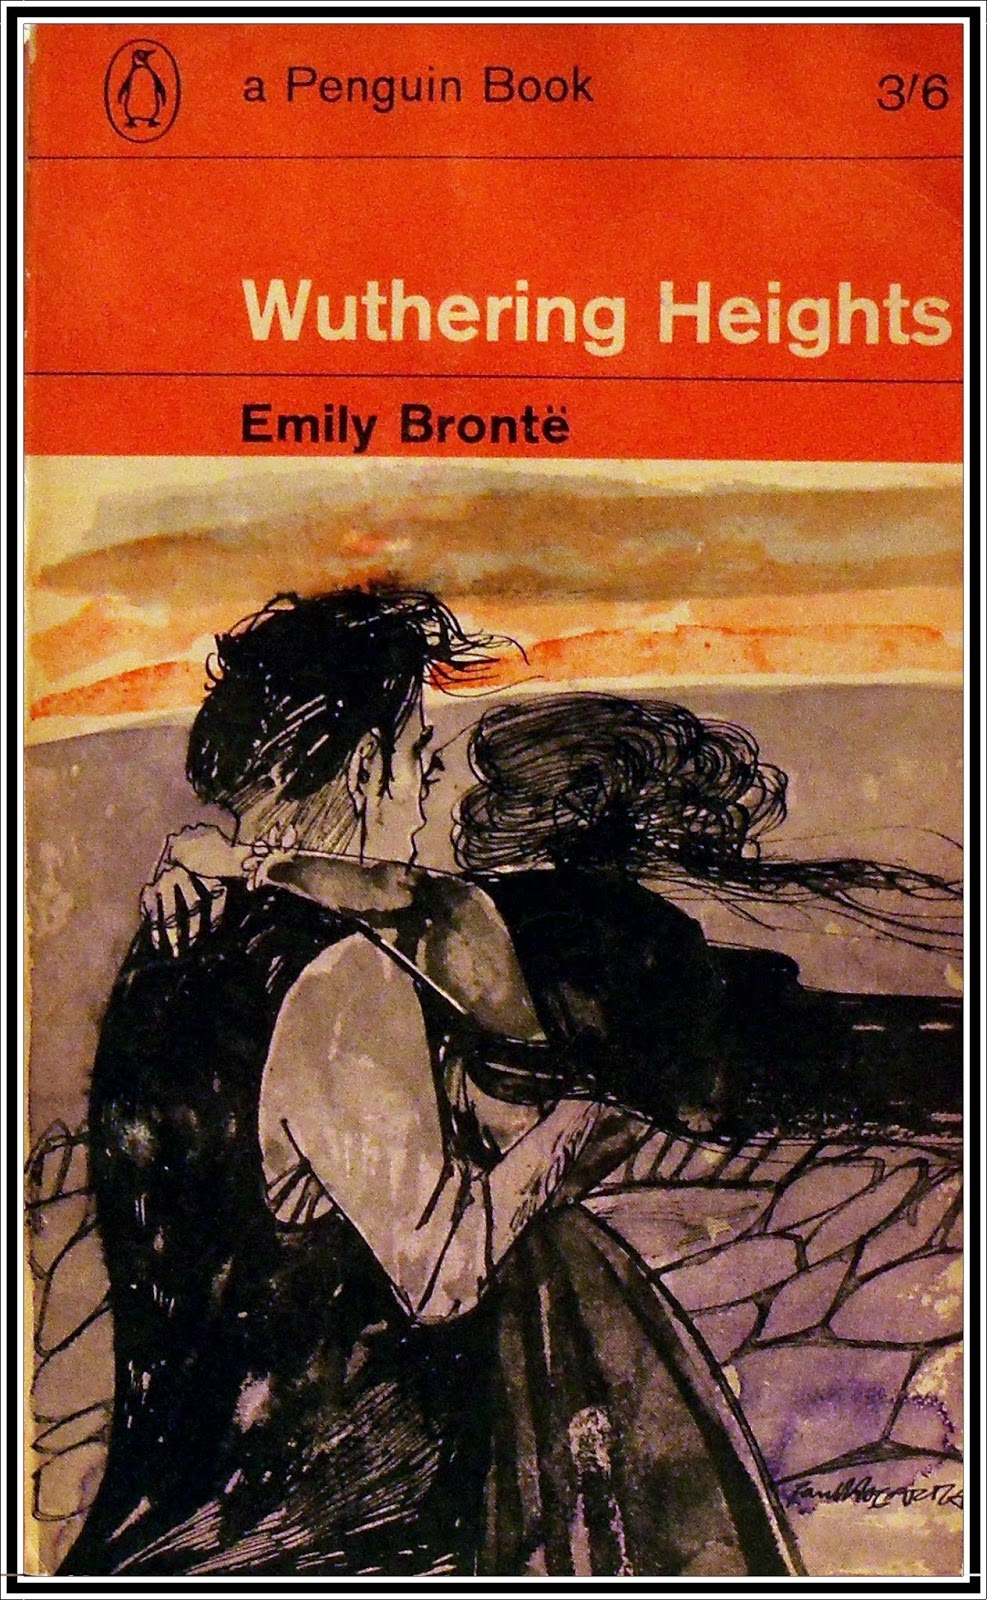 the corporate slacker wuthering heights tuesday 13 2015